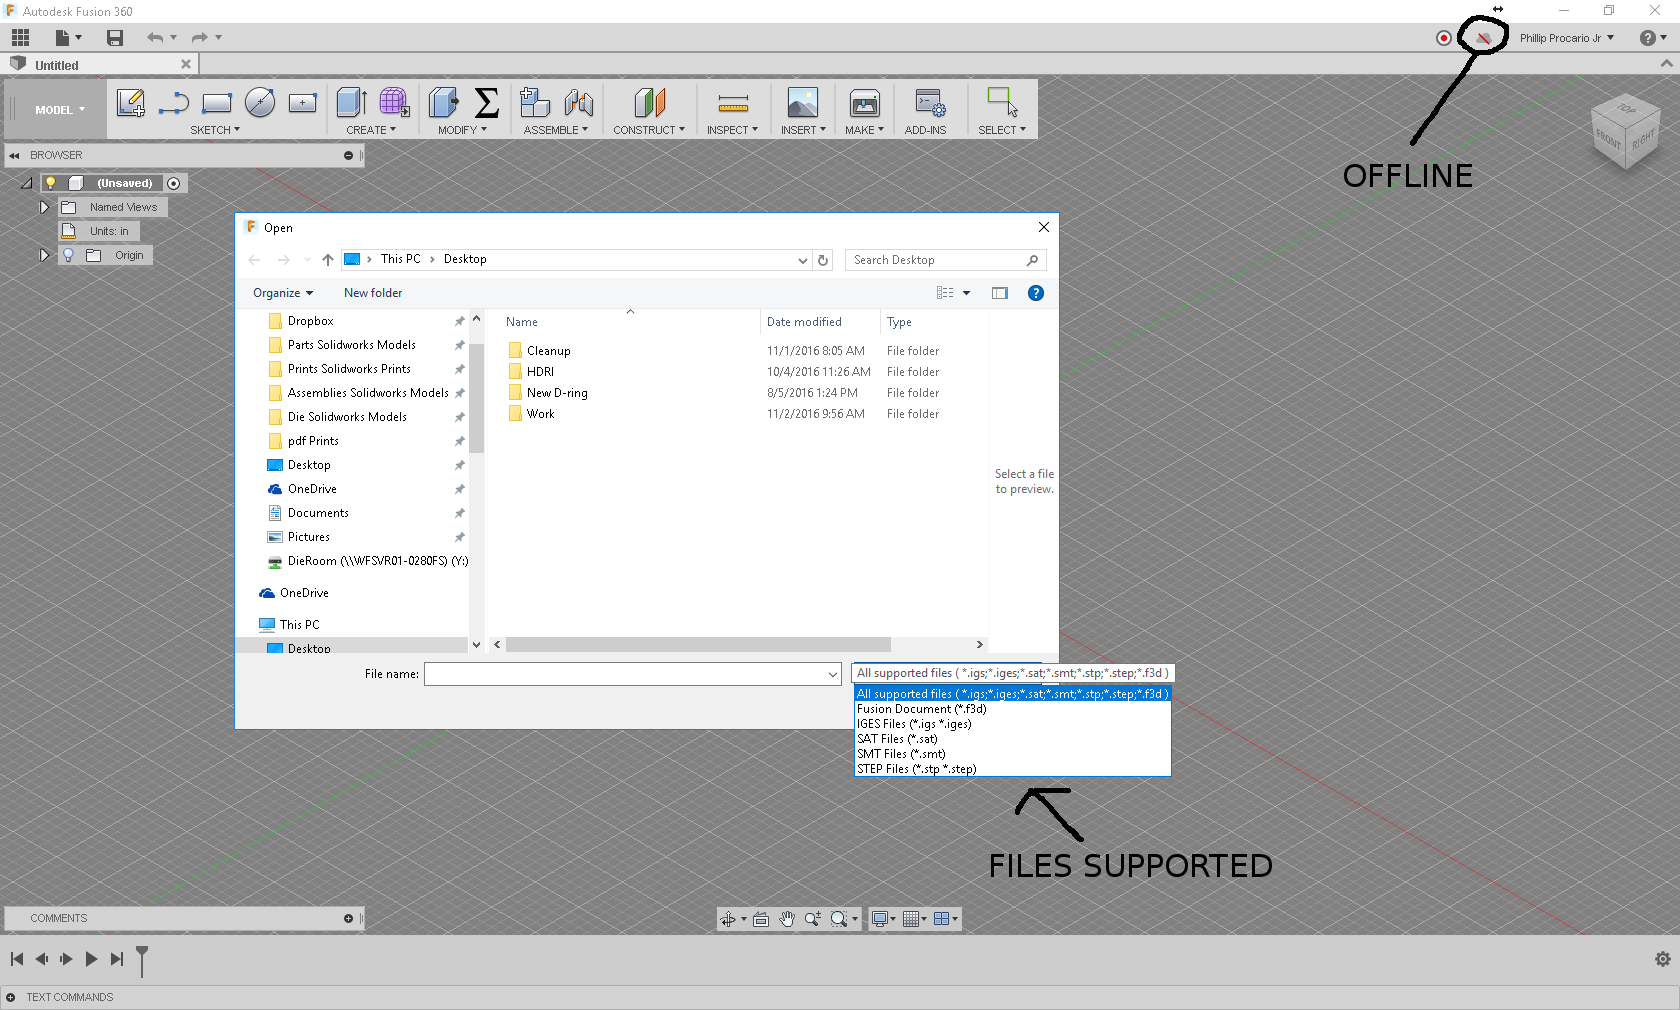 Solved: RESOLVED: Fusion 360 Service Outage - Autodesk